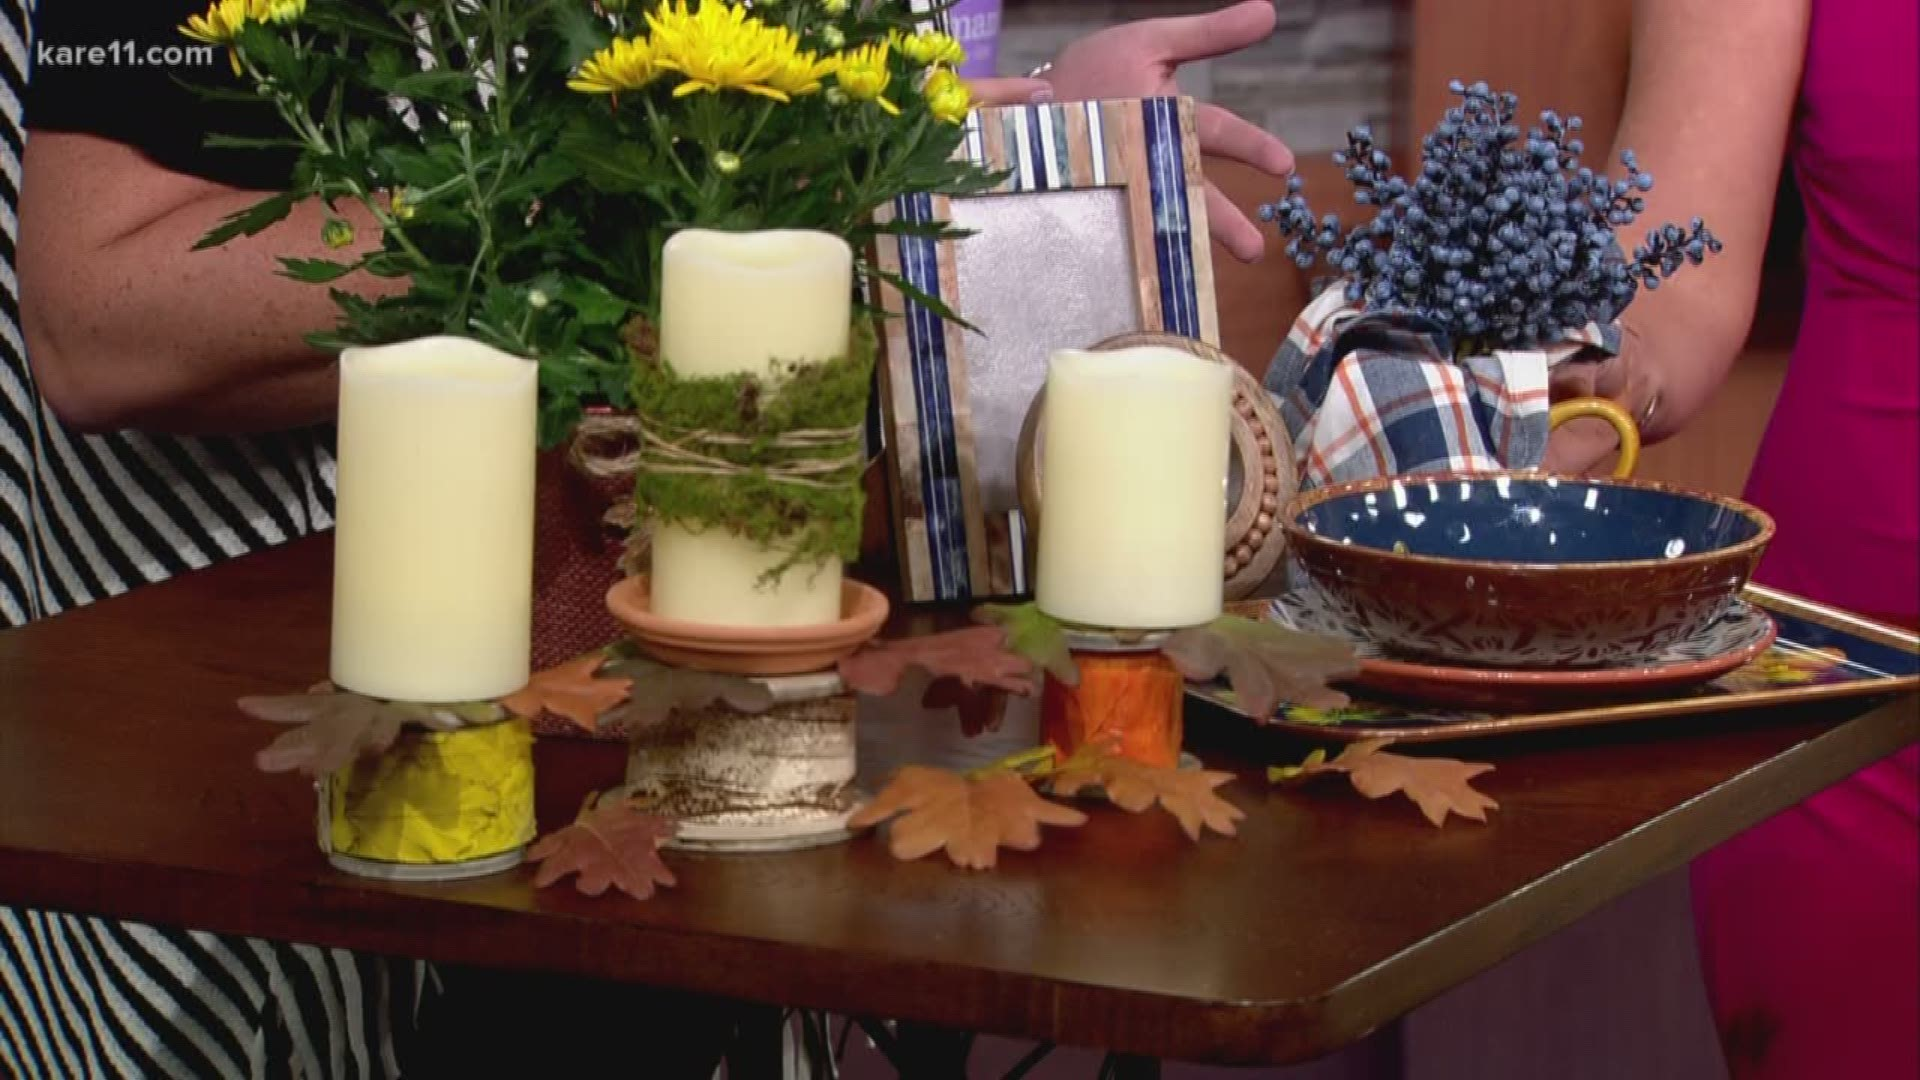 Bachman S Offers Inspiration For Autumn With Its Fall Ideas House Kare11 Com